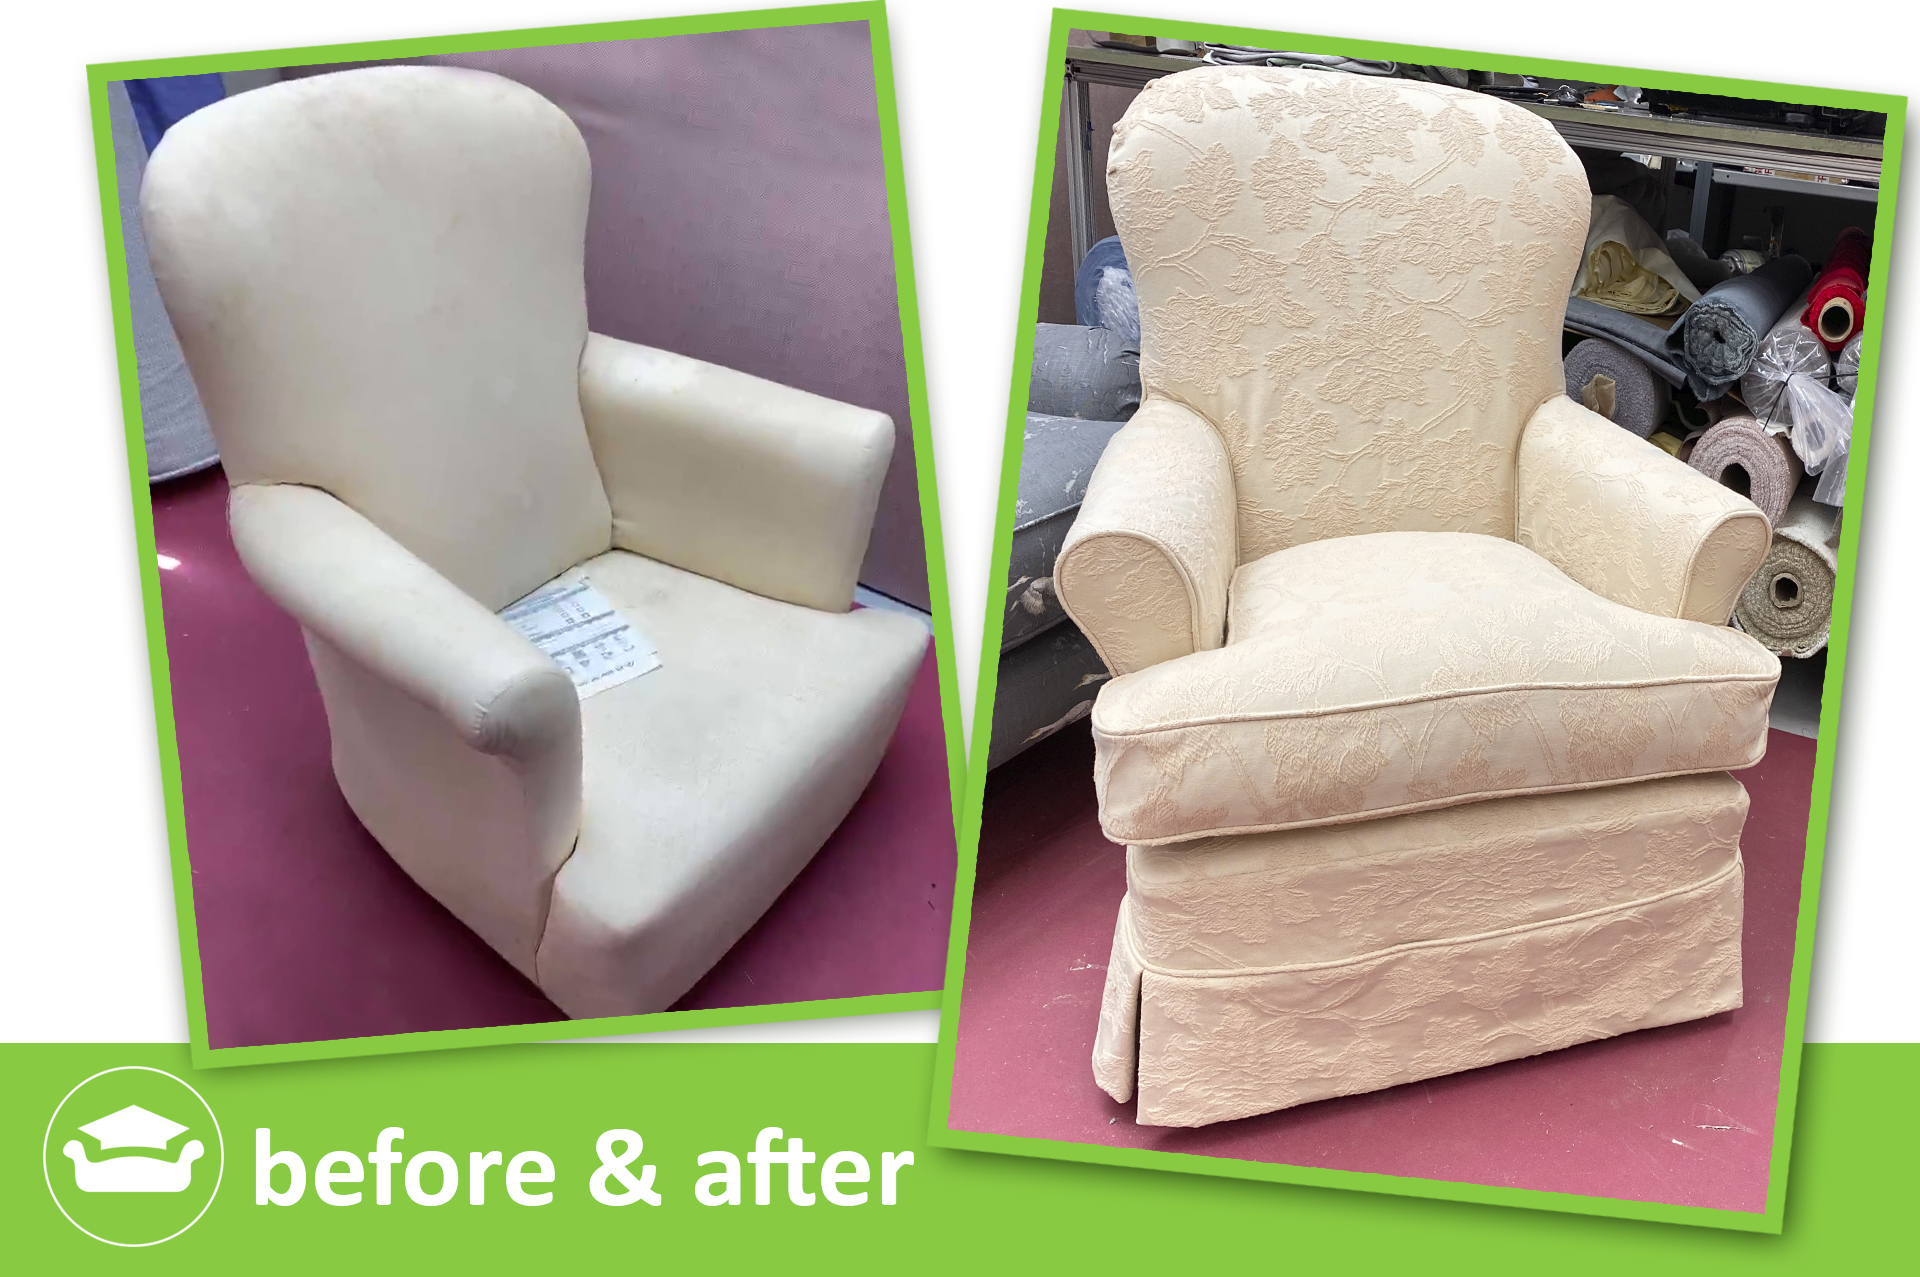 learn loose covers for a Terad chair